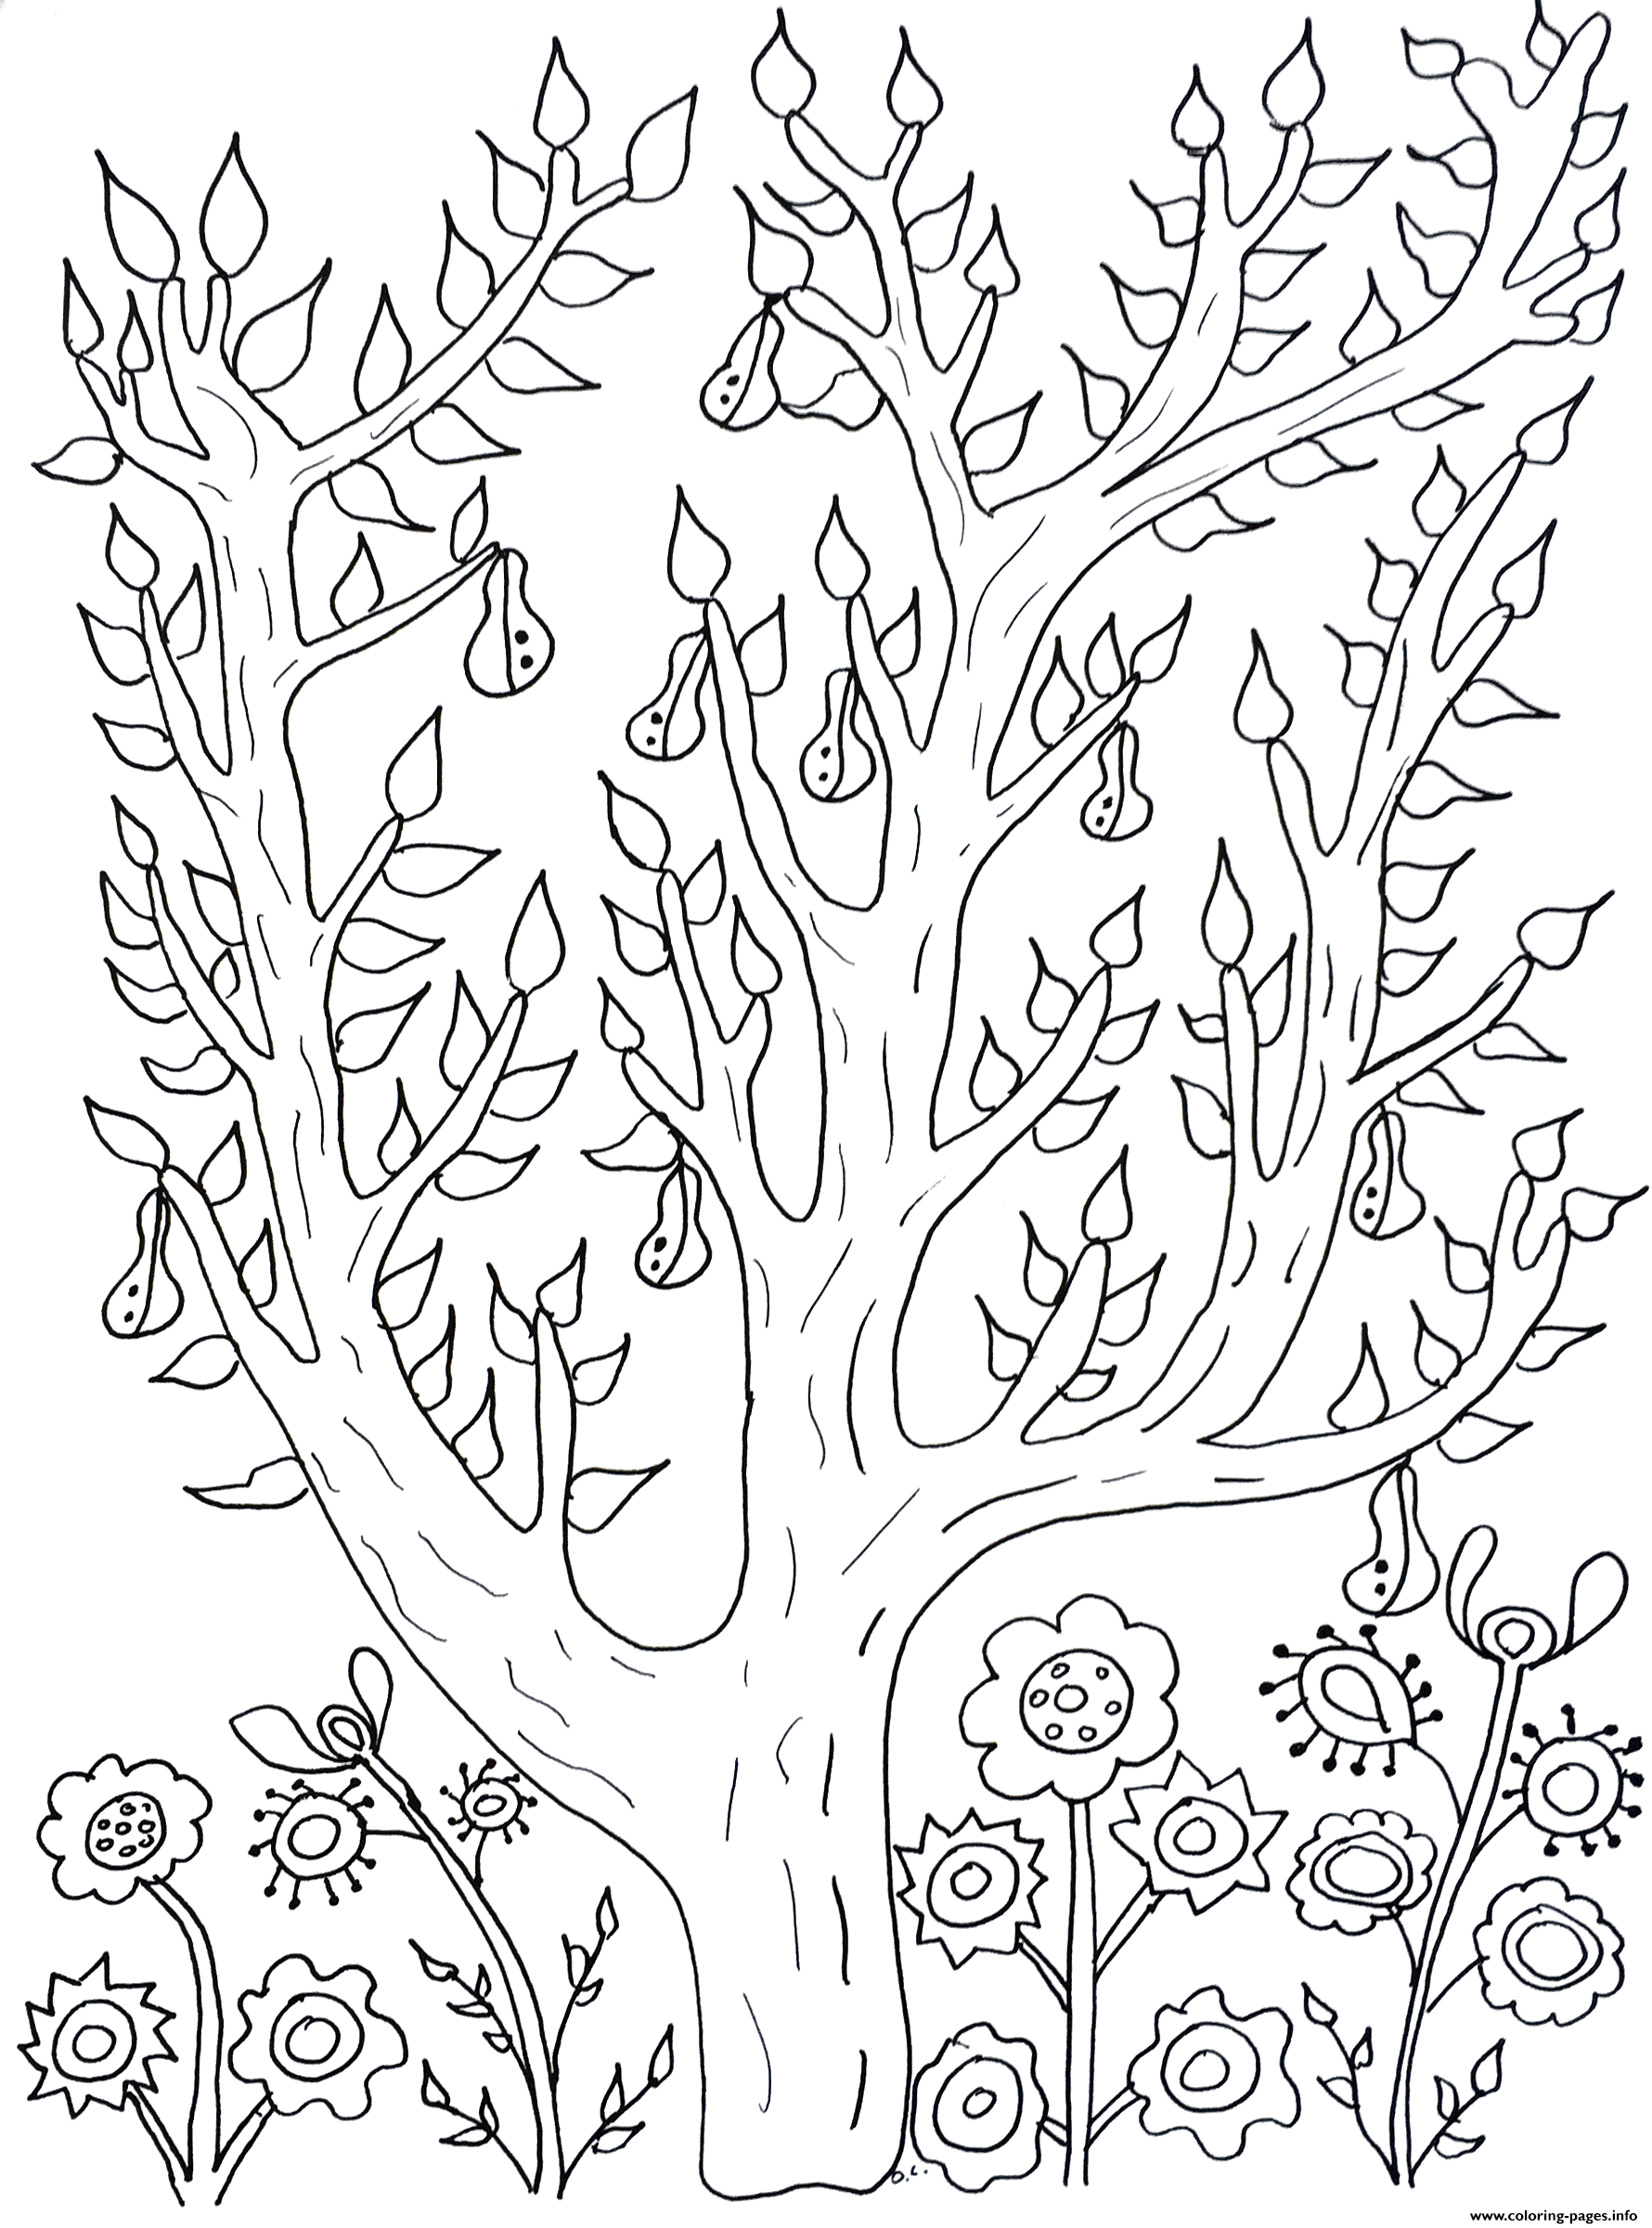 Adult Cute Tree With Leaves And Pears Olivier coloring pages